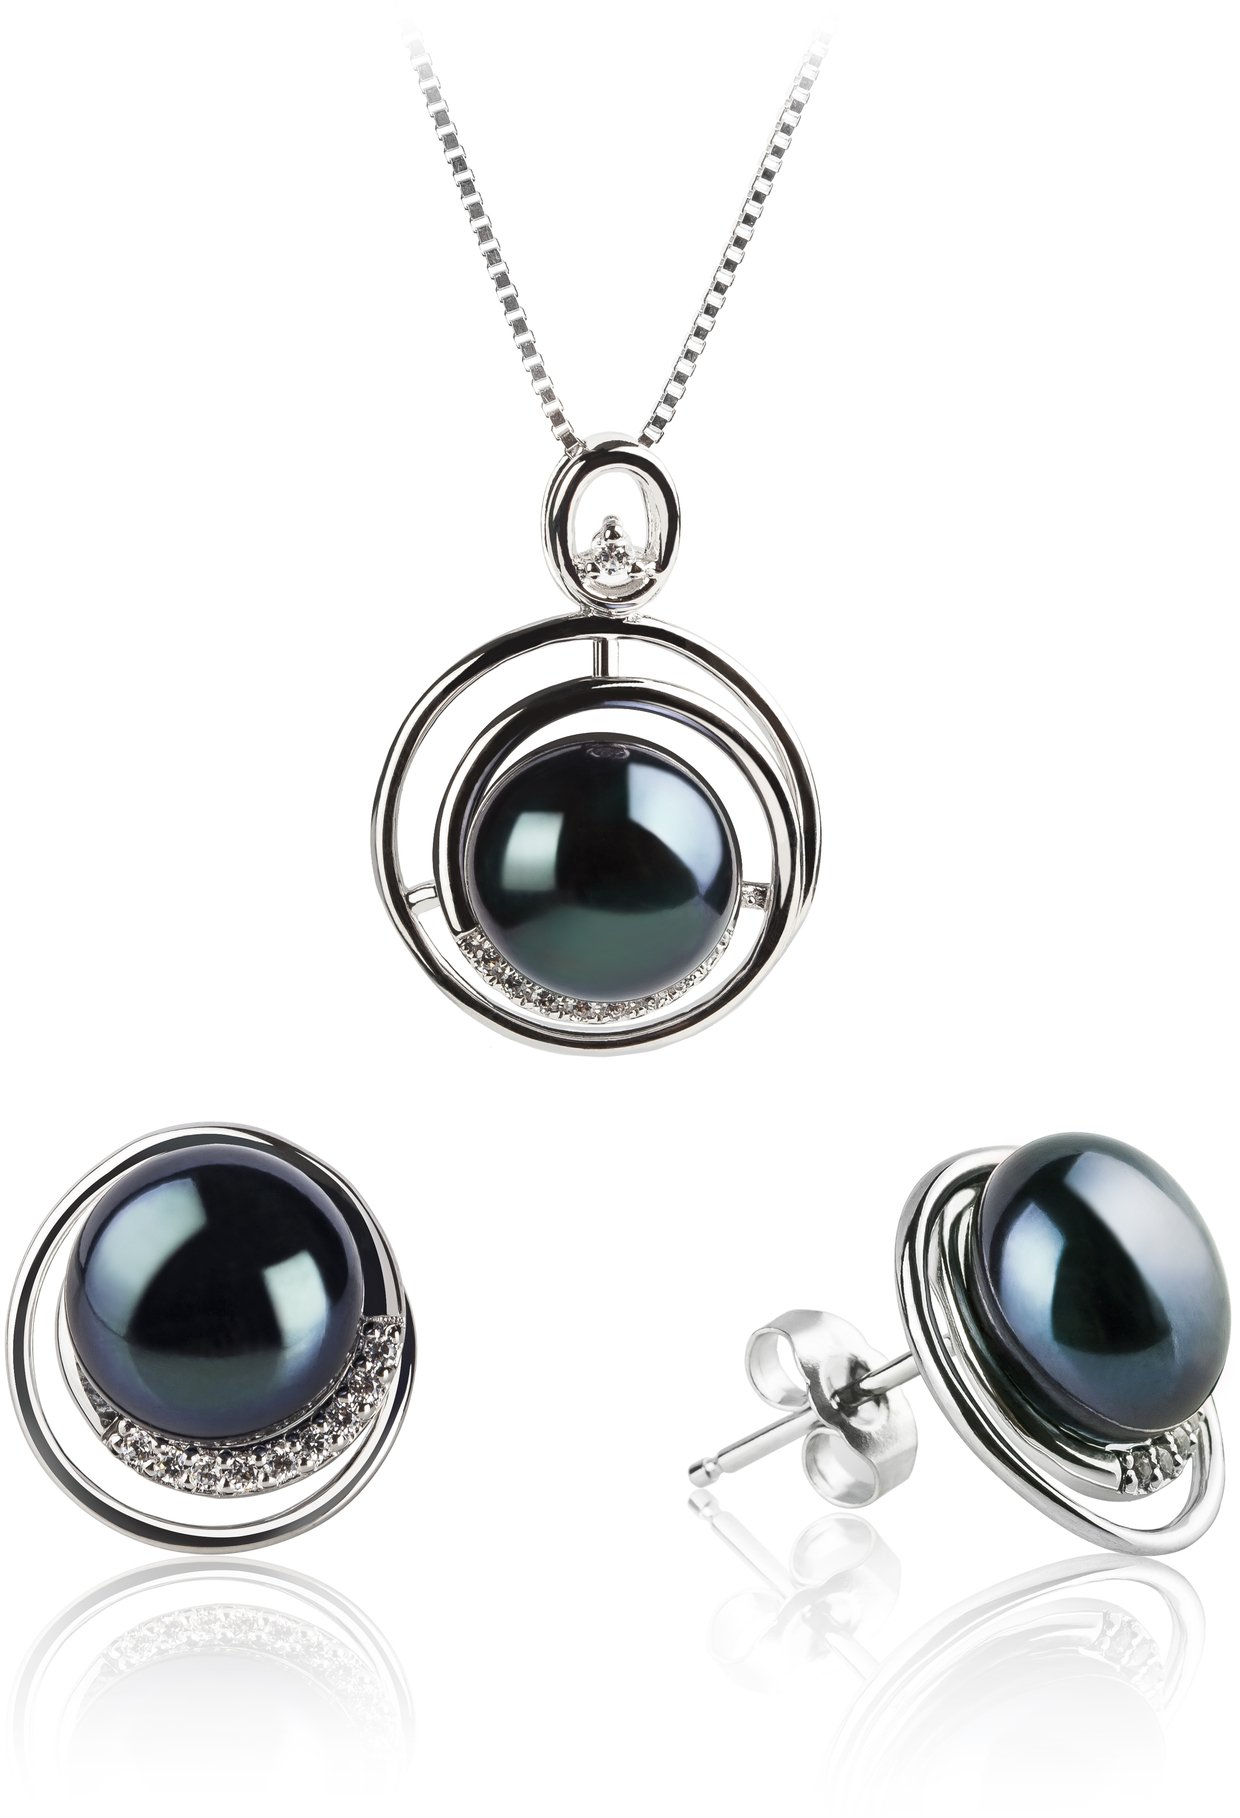 PearlsOnly - Kelly Black 9-10mm AA Quality Freshwater 925 Sterling Silver Cultured Pearl Set